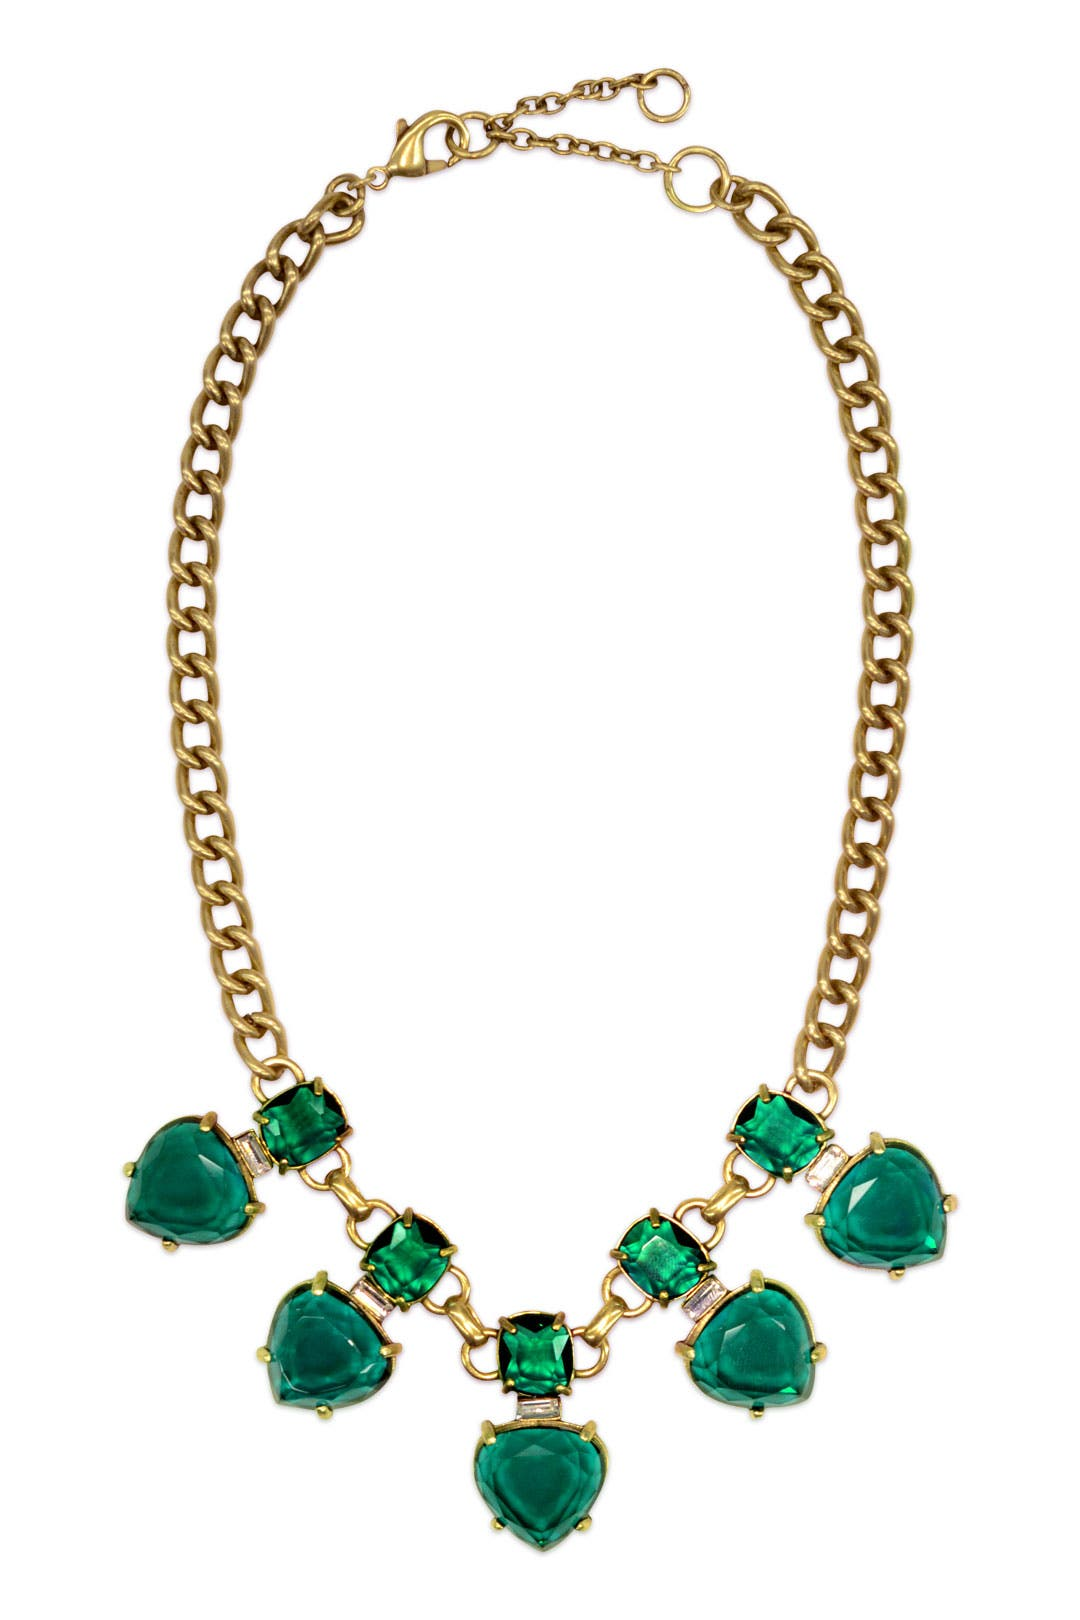 Emerald Hearts Necklace by Gerard Yosca